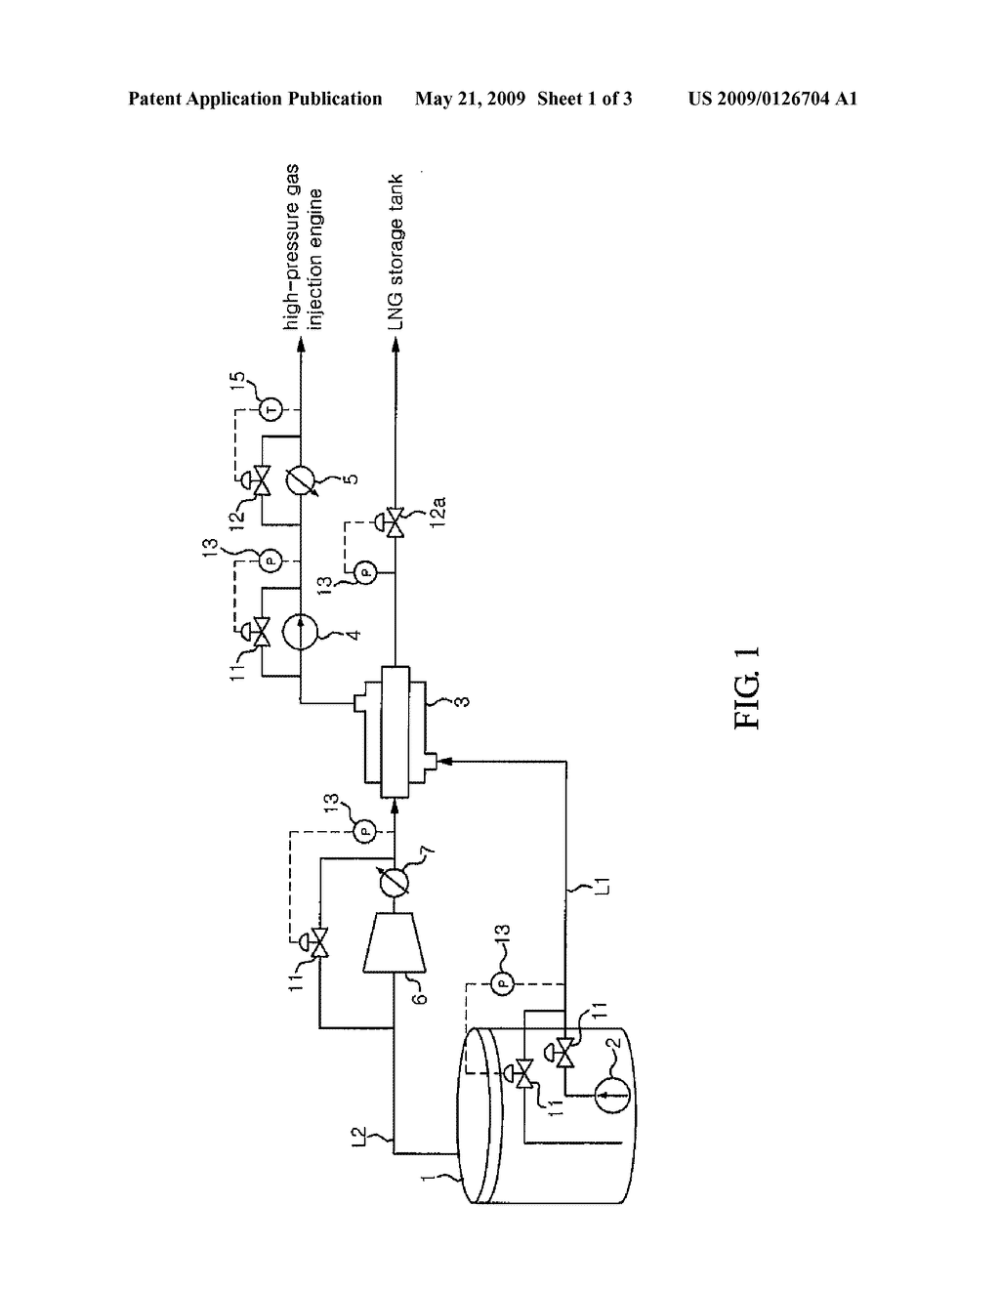 medium resolution of fuel gas supply system and method of an lng carrier diagram schematic and image 02